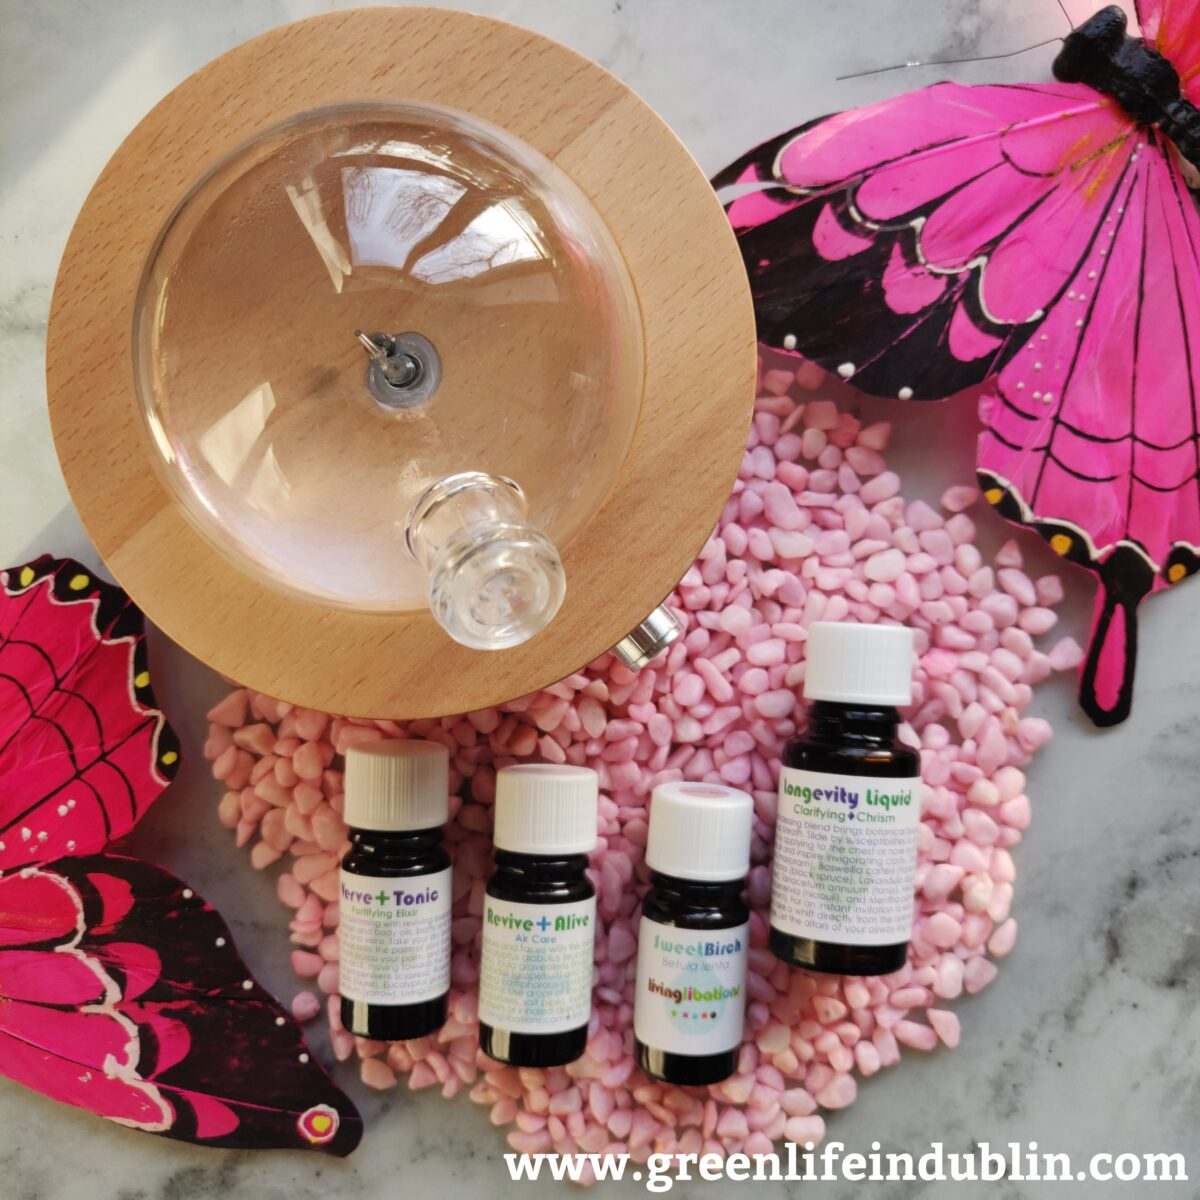 Living Libations Nebulizing Diffuser Review